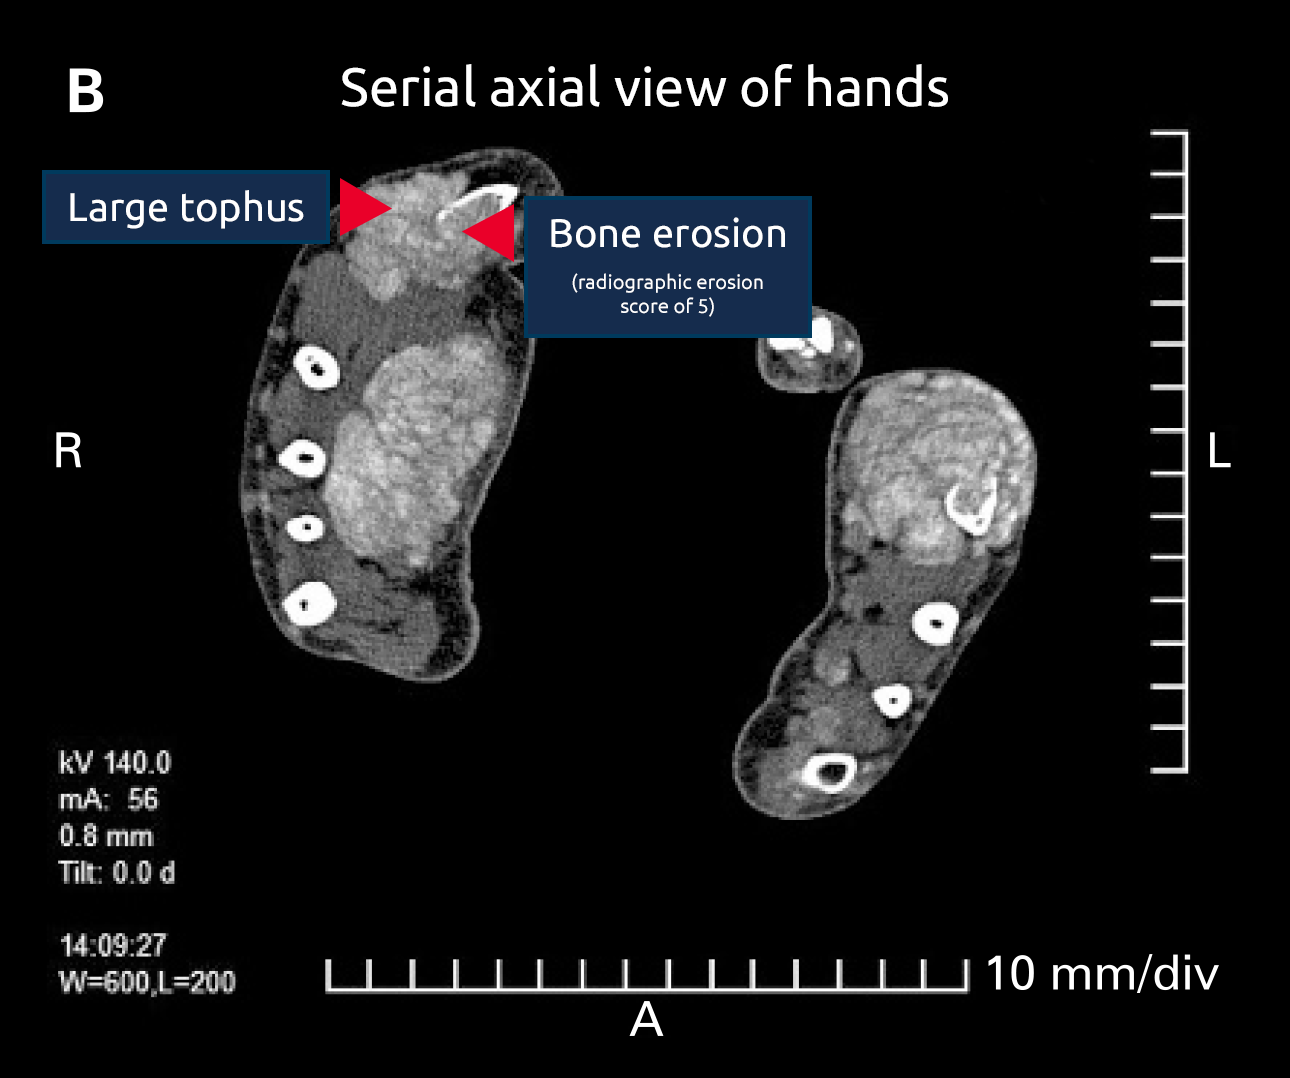 Serial axial view of hands Large tophus Bone erosion (radiographic erosion score of 5)